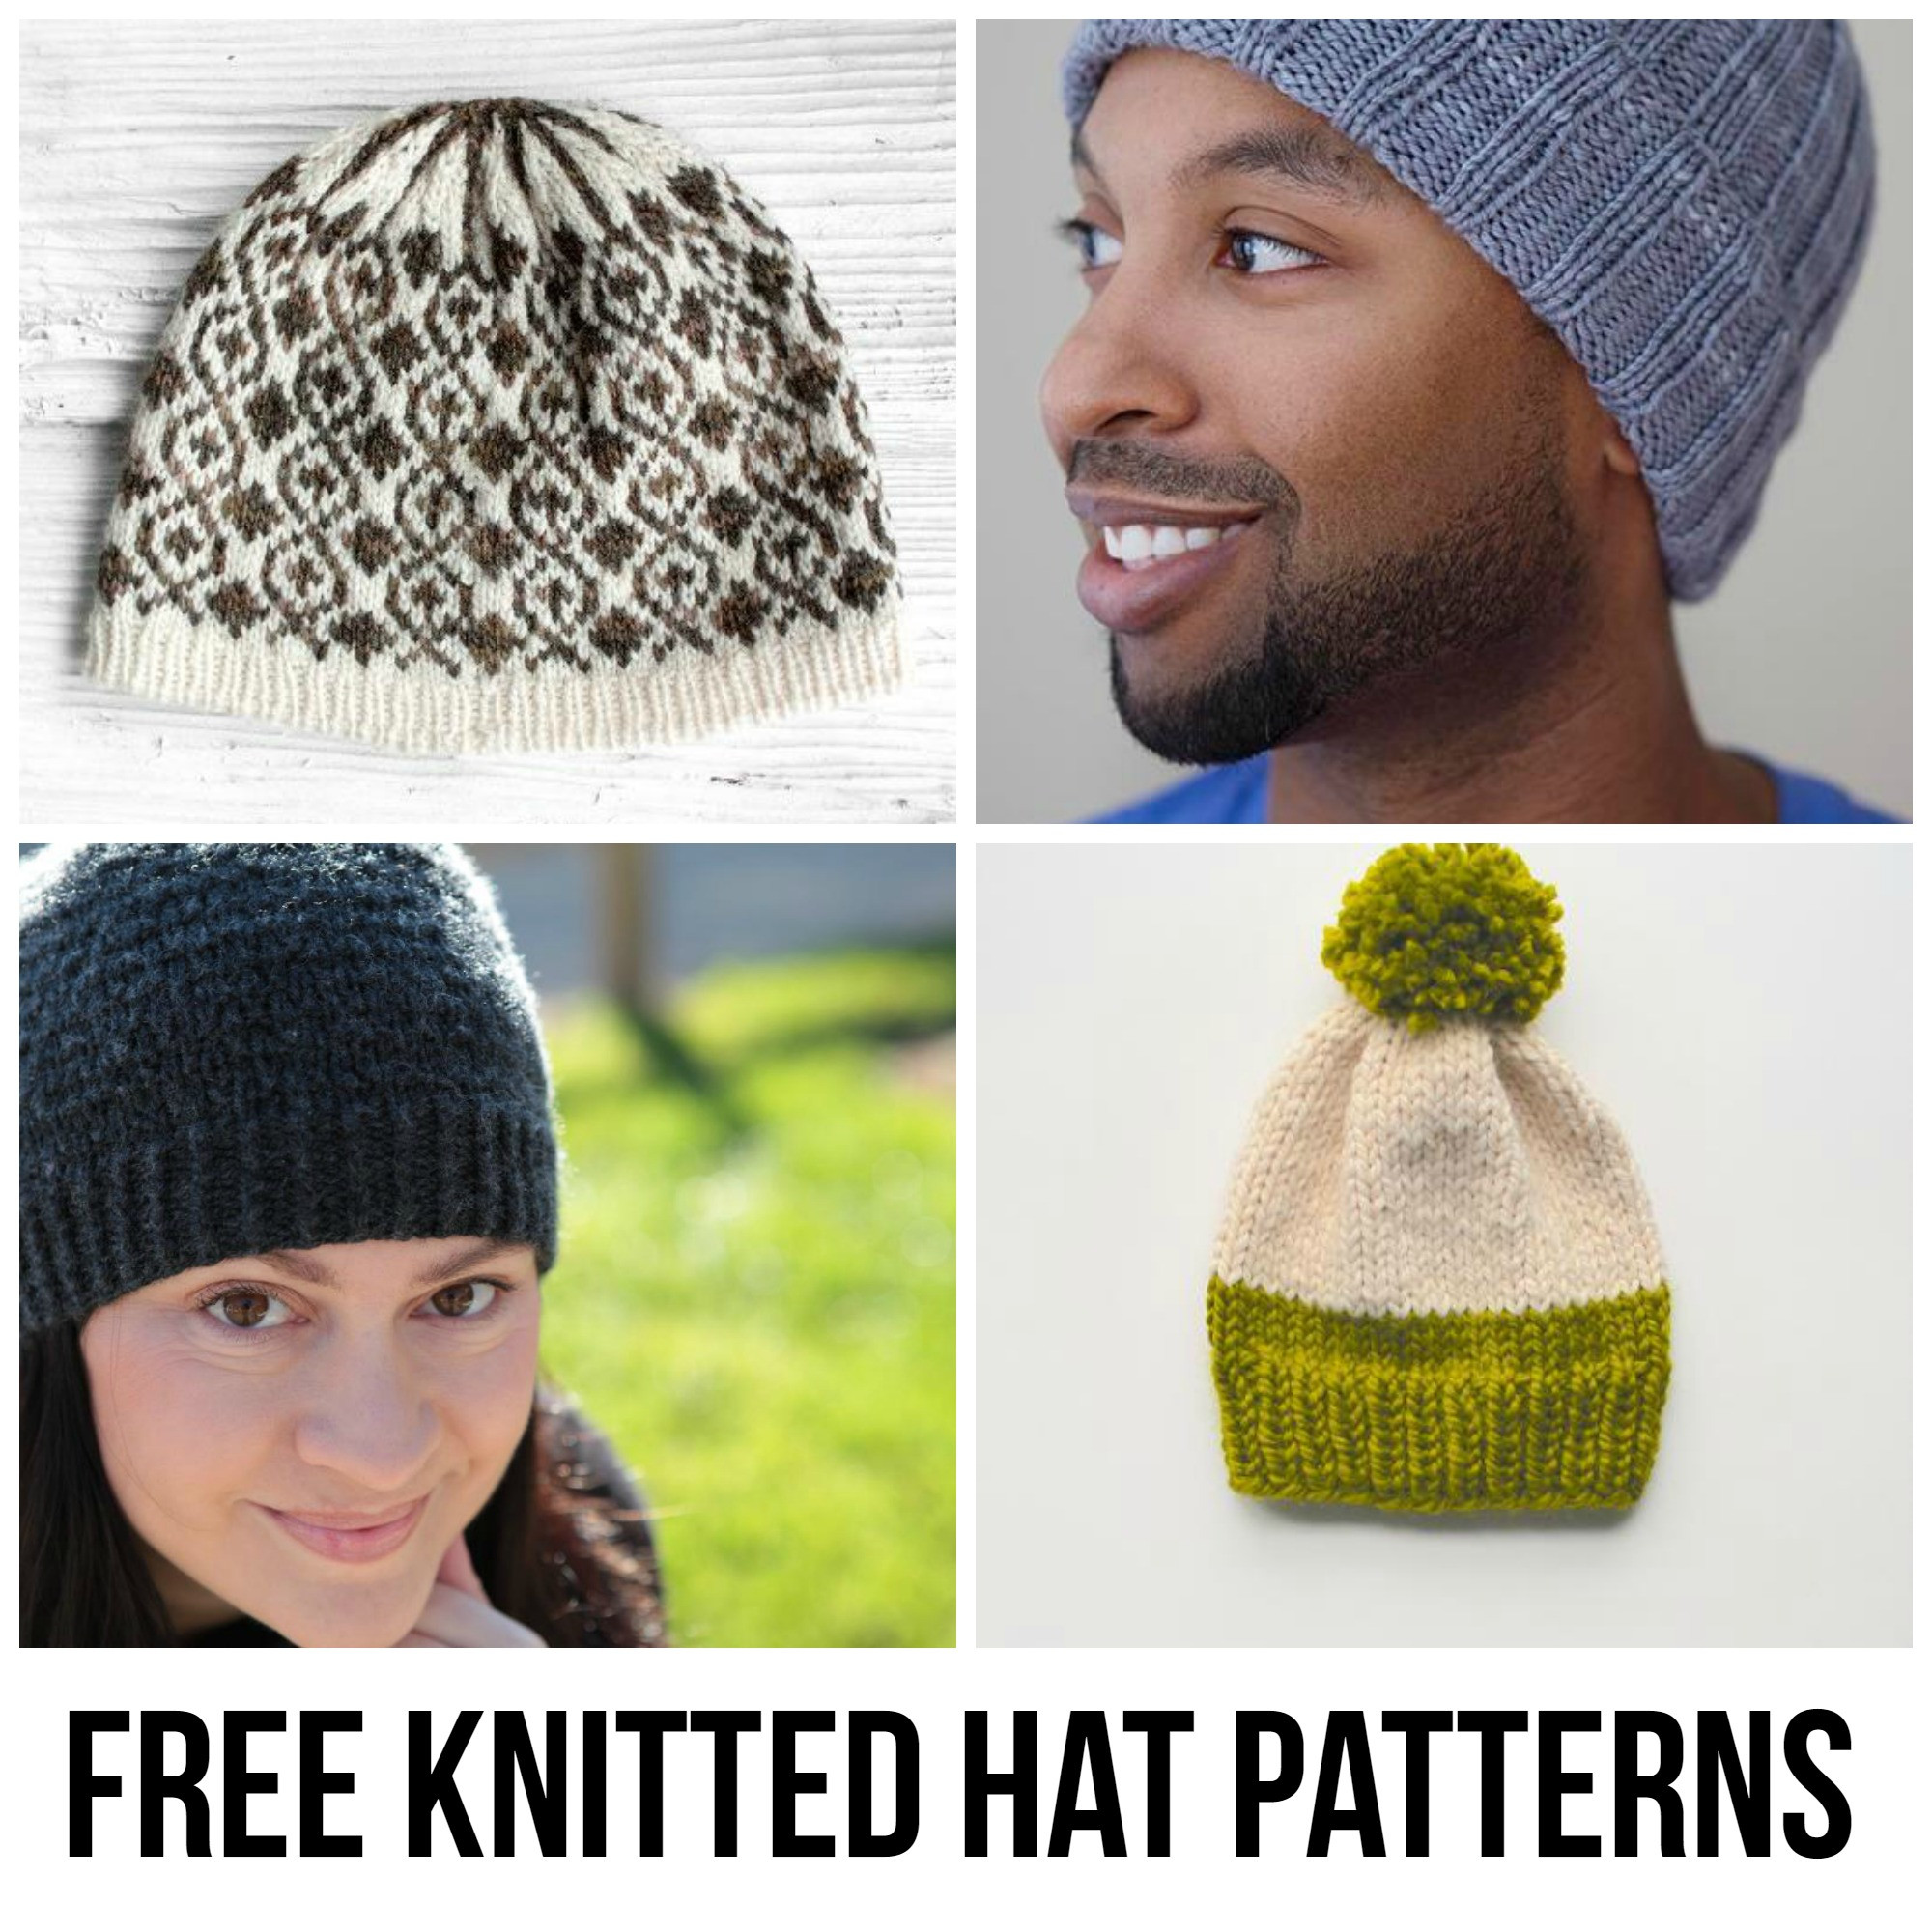 Free Knitting Patterns Awesome 10 Free Knitted Hat Patterns Of Amazing 46 Ideas Free Knitting Patterns